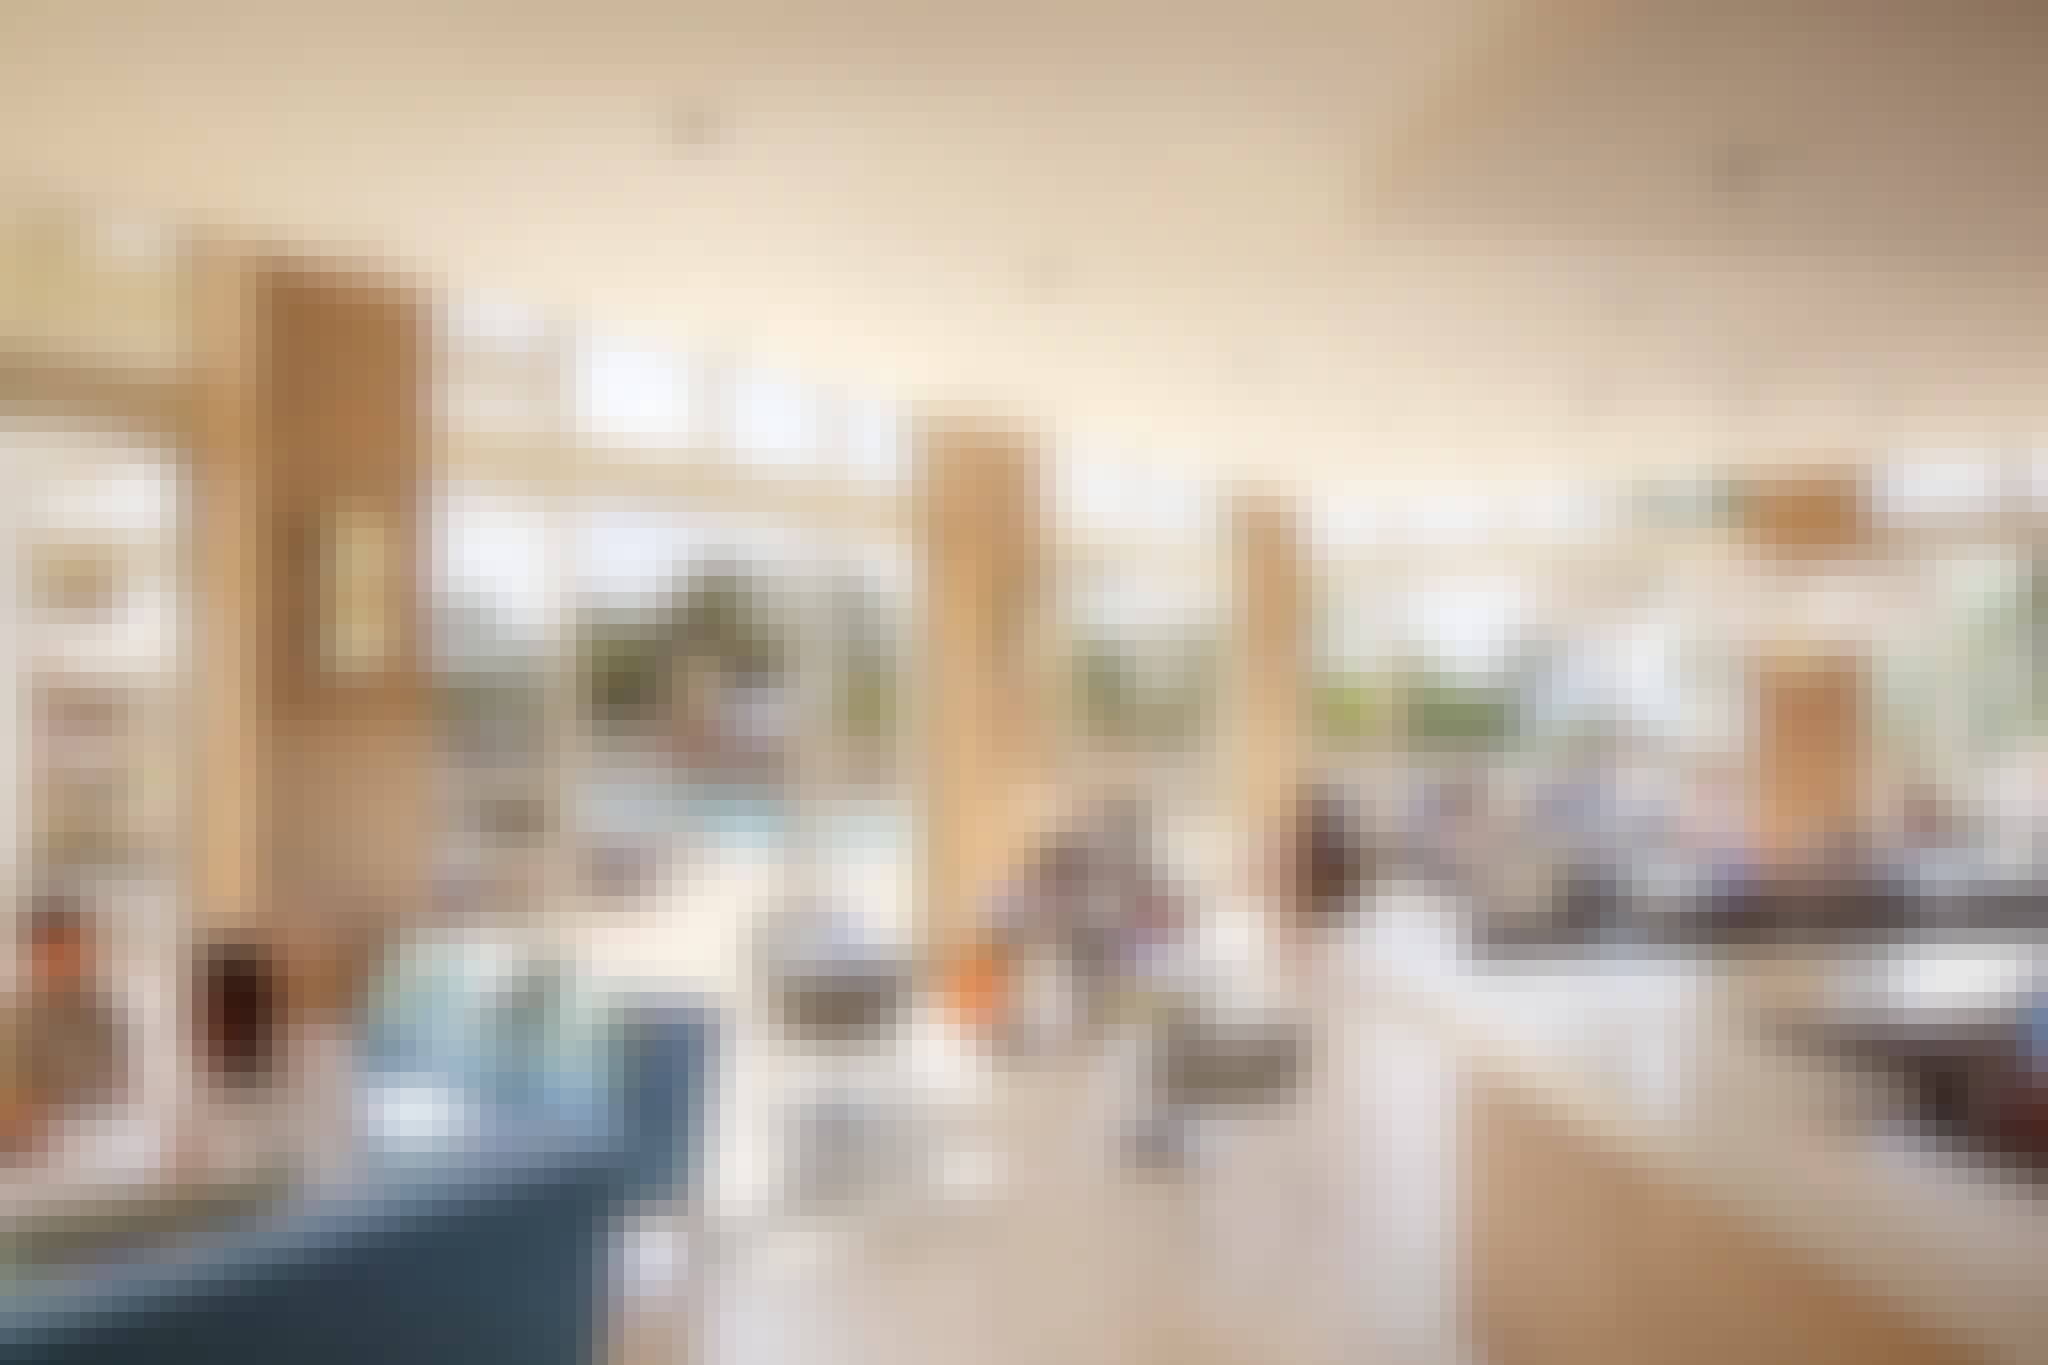 post-covid design for hotels with commercial glass walls